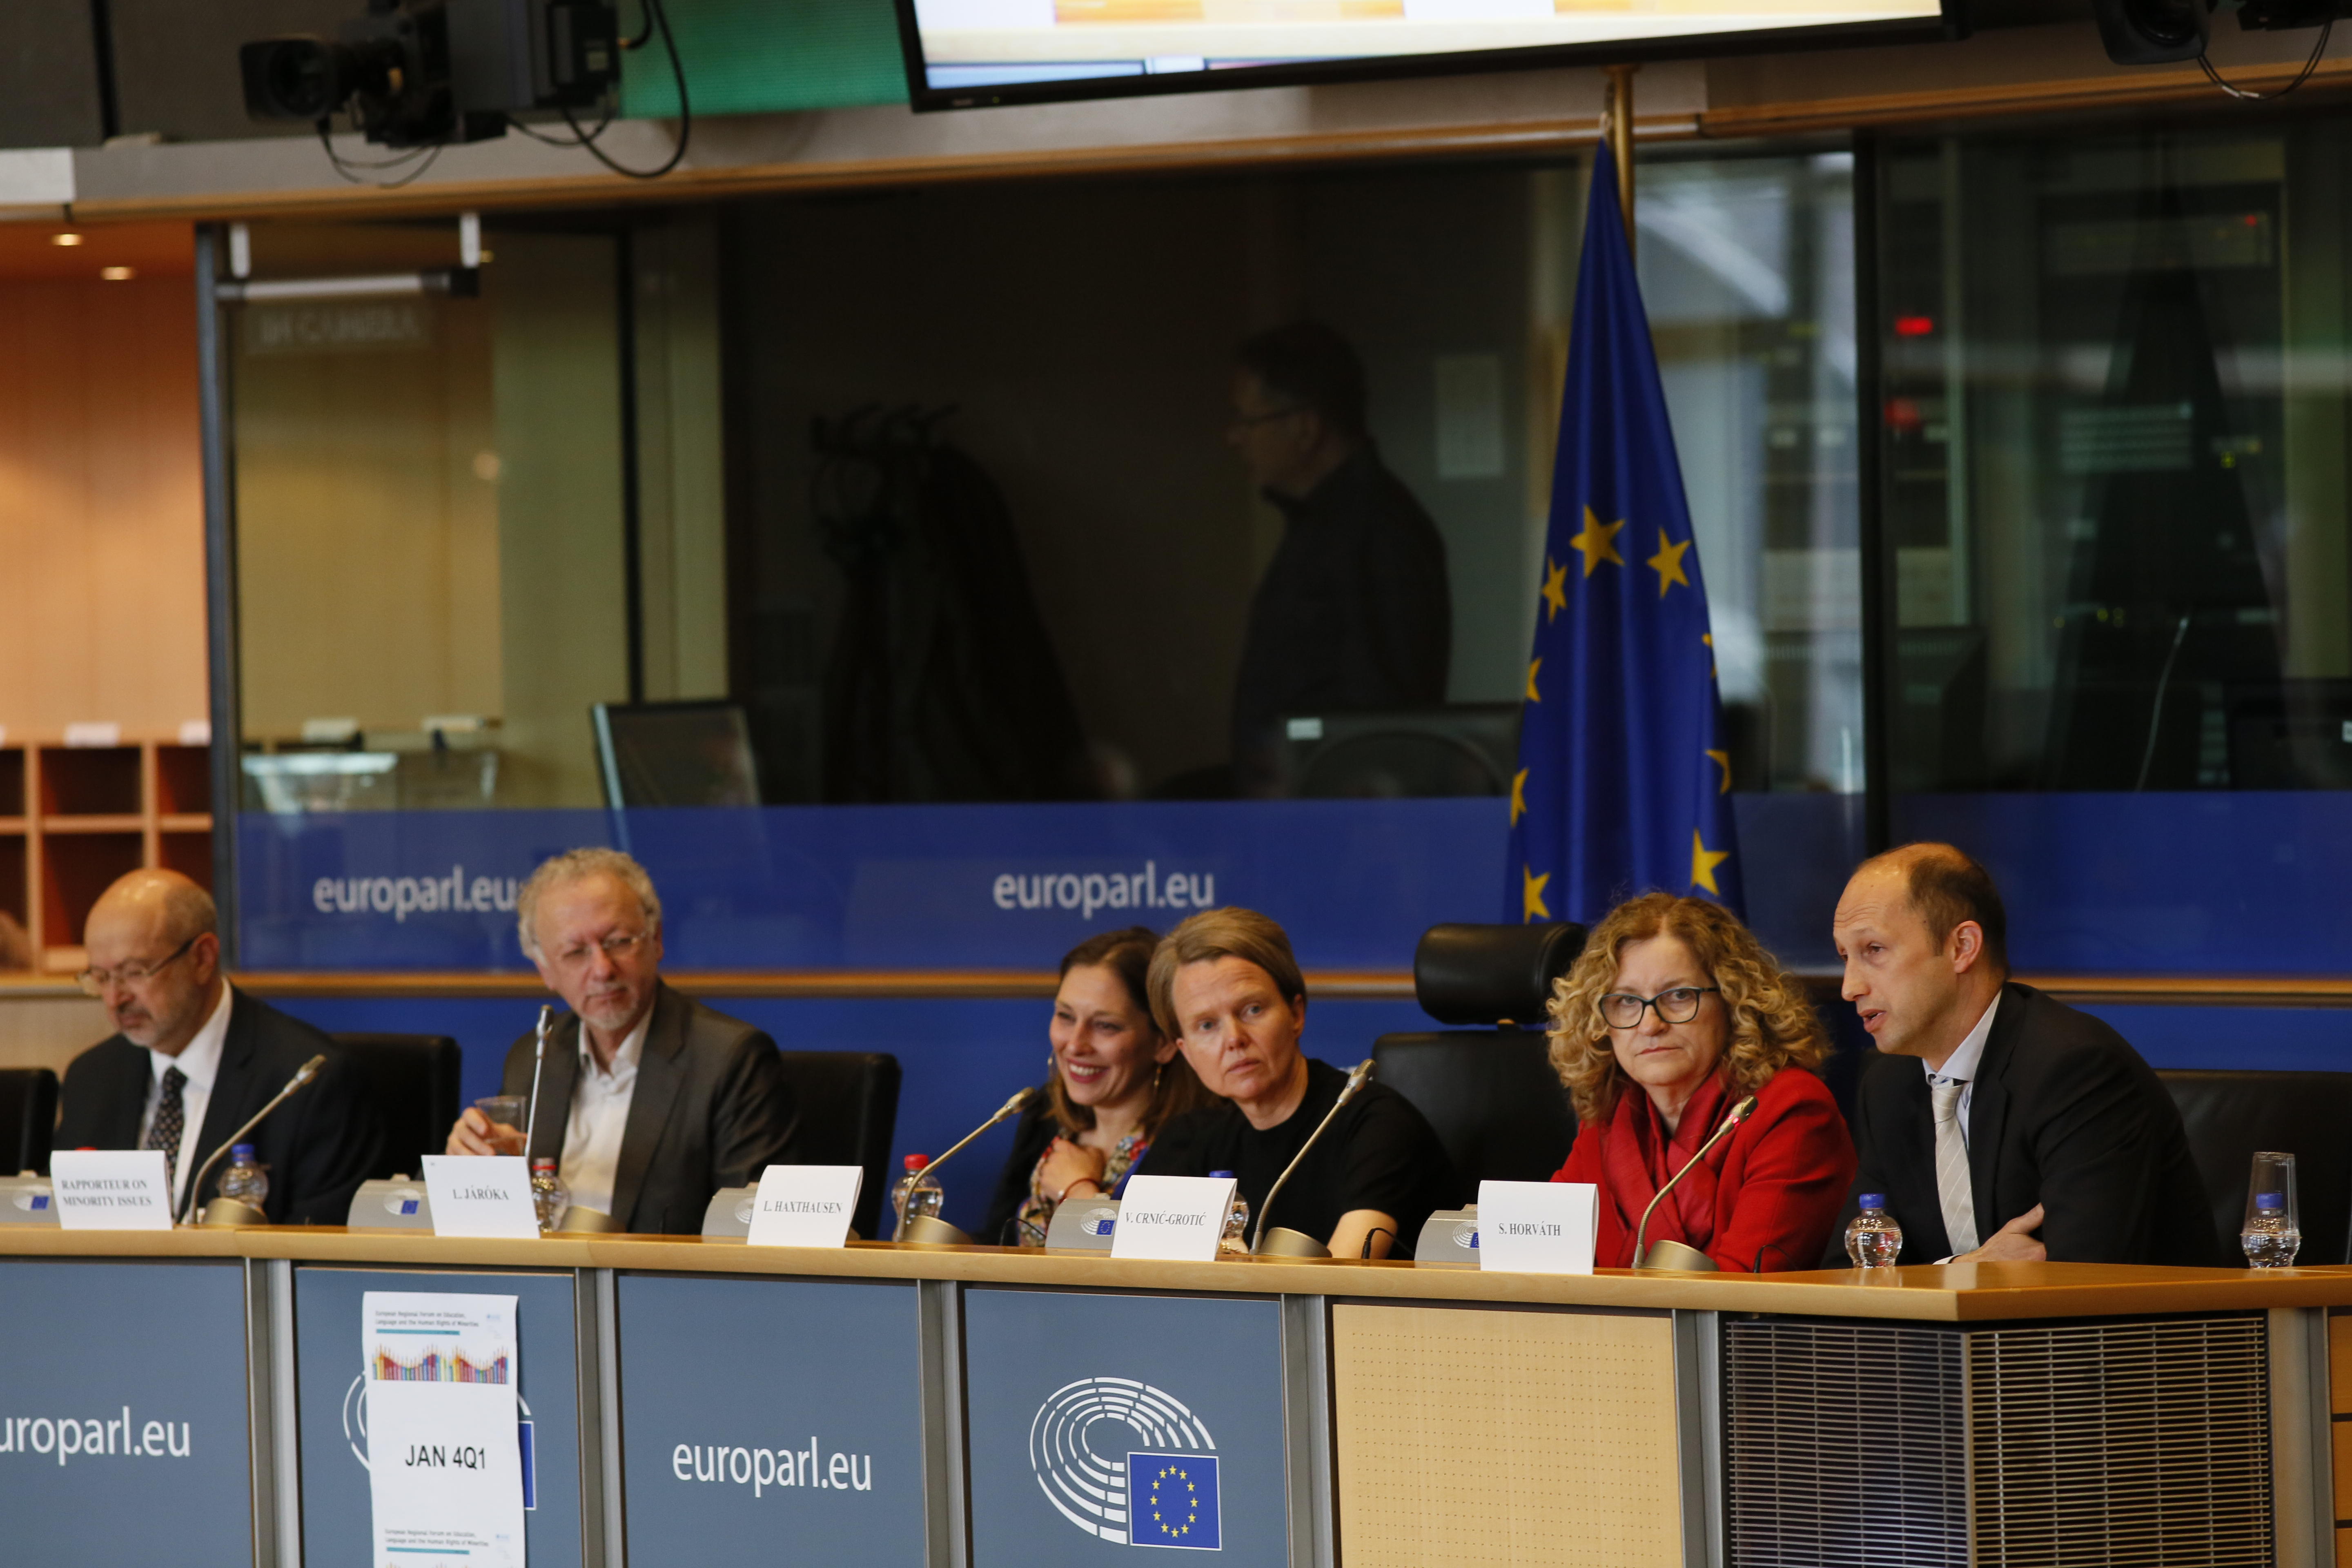 First European Forum on Minority Issues Held in Brussels